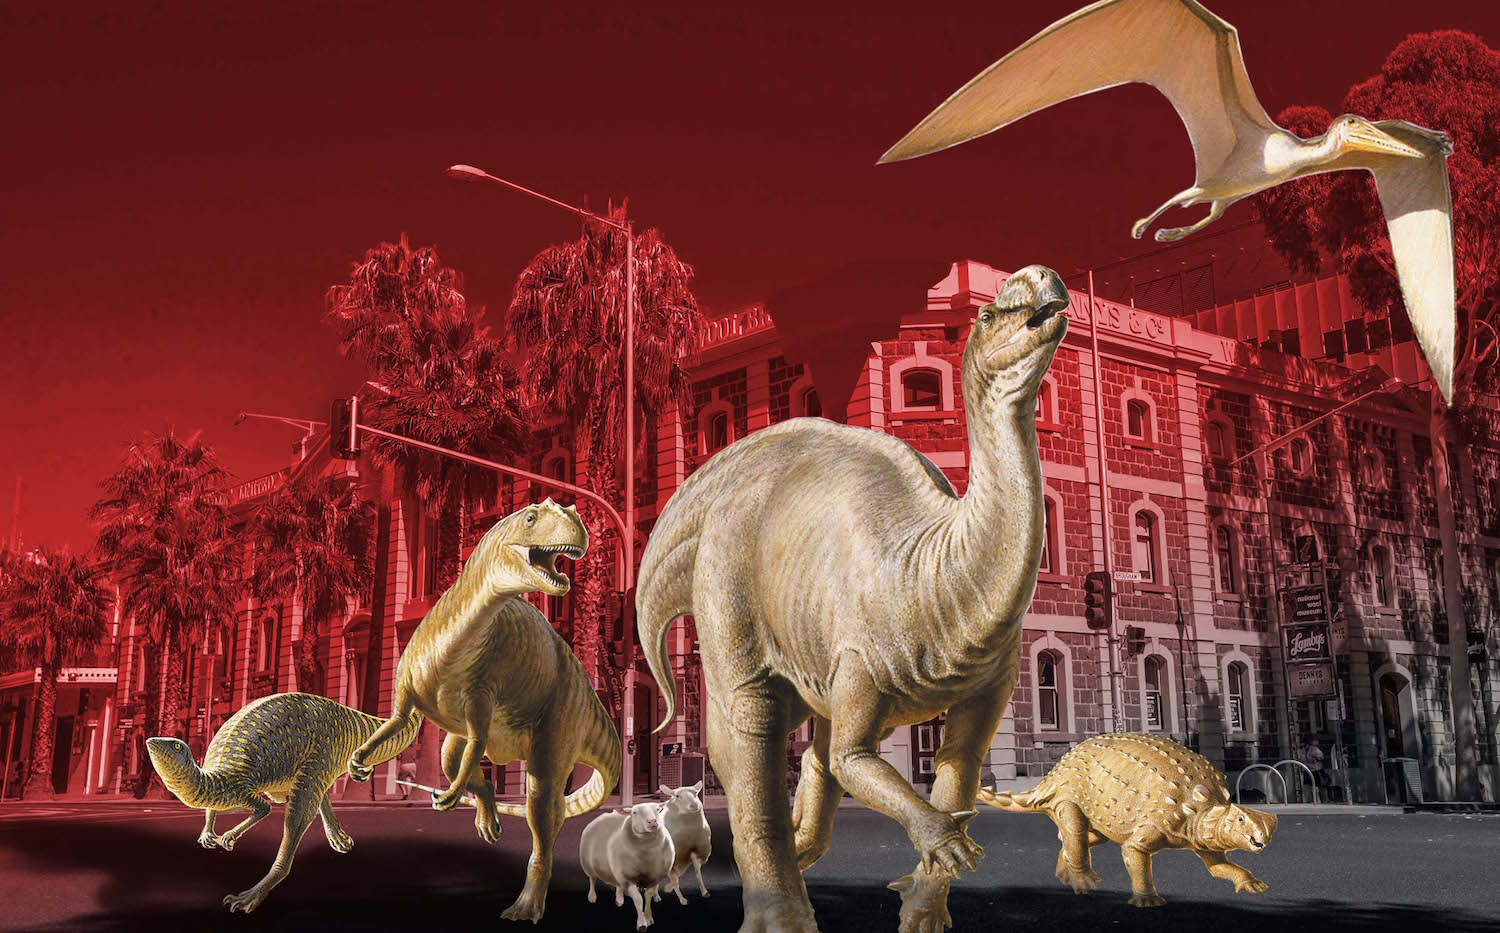 The National Wool Museum will be open 6-10pm this year at Geelong After Dark and has an exciting array of surprises brewing within the depths.